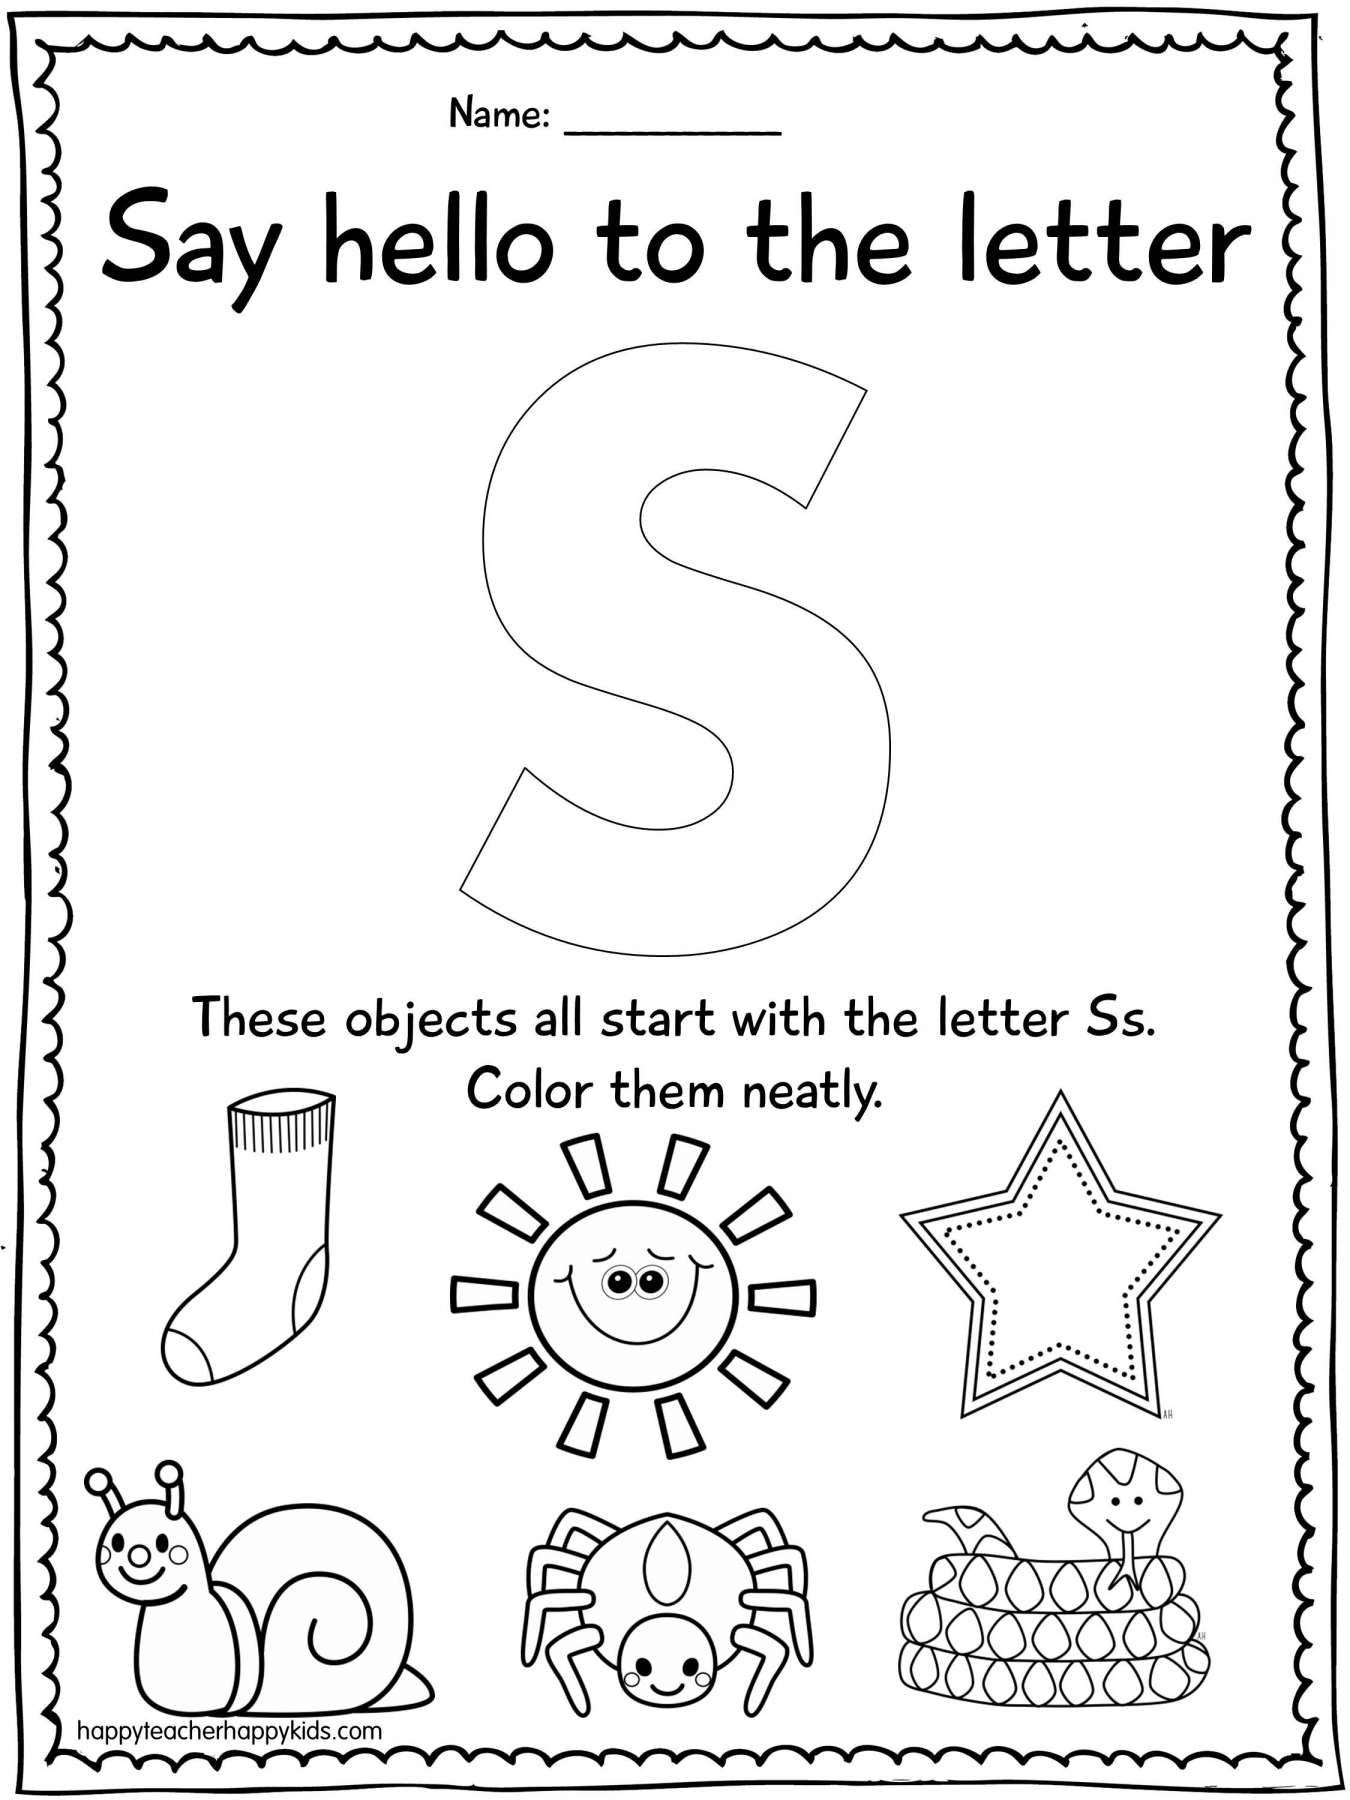 10 Shapes Maze Letter S Worksheet Preschool